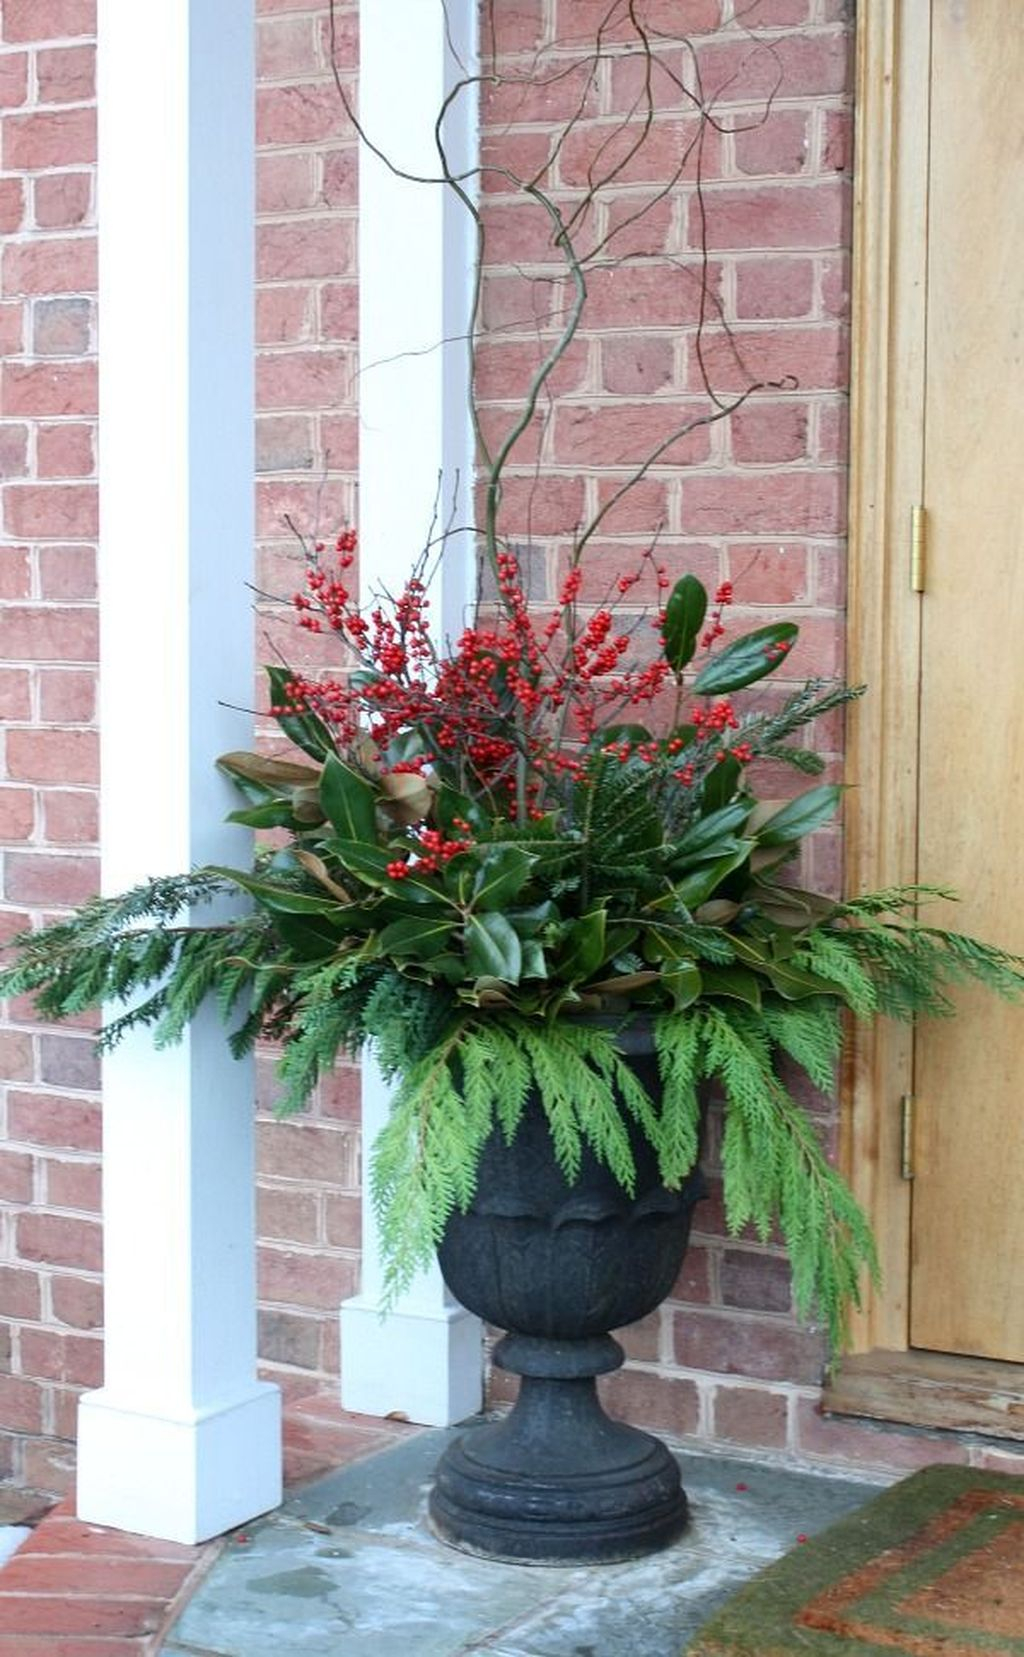 Marvelous Outdoor Holiday Planter Ideas To Beauty Porch Décor 28